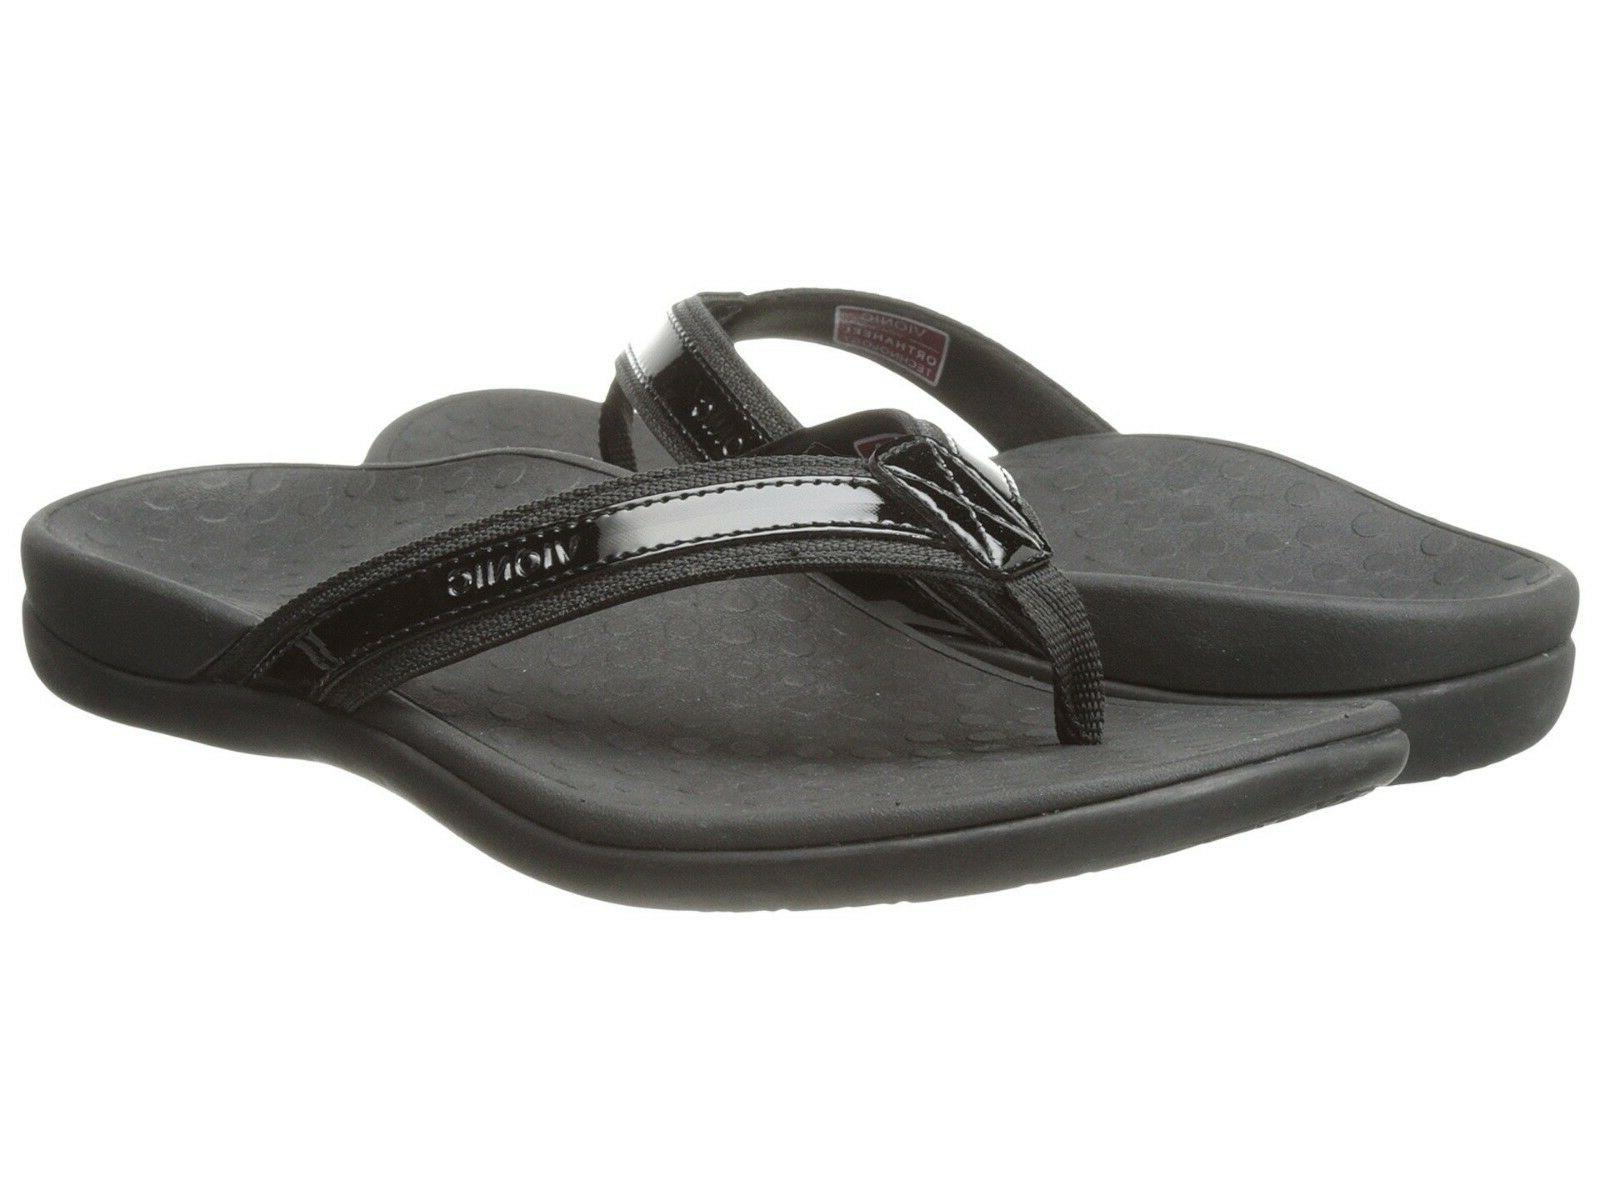 Women's Vionic Tide II Flip Flop Sandals Black US Sizes